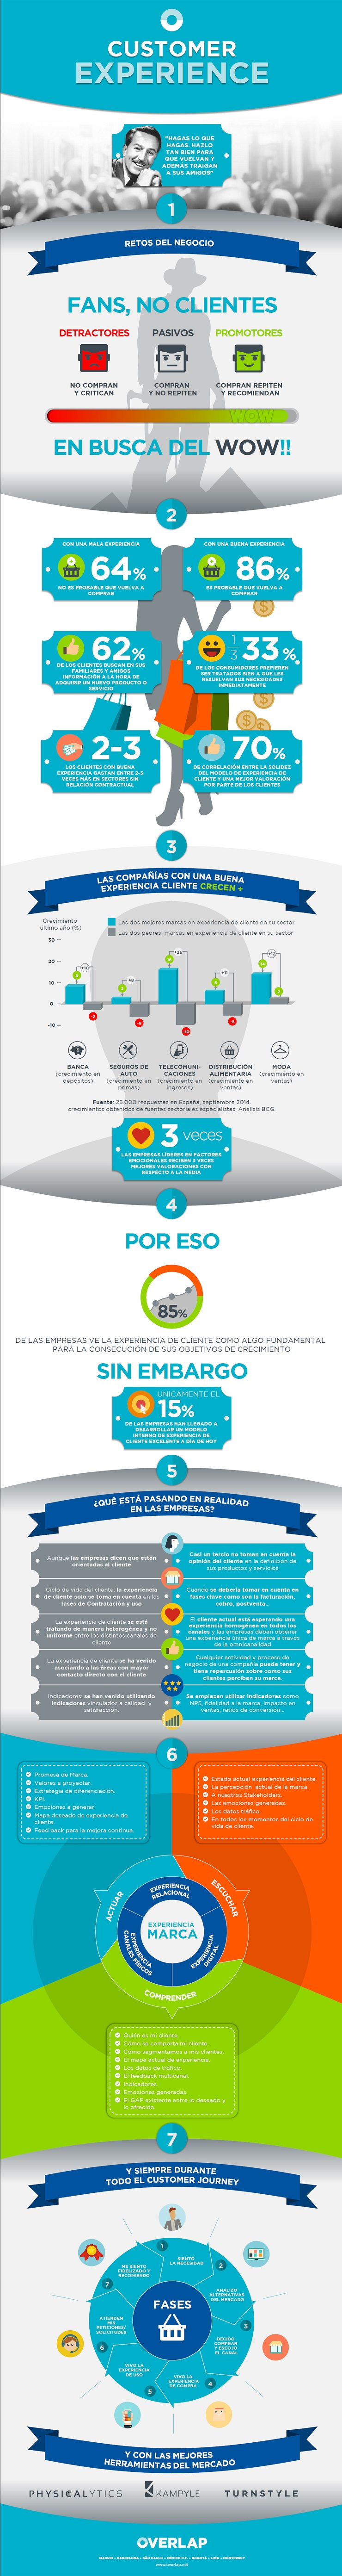 experiencia memorable infografía